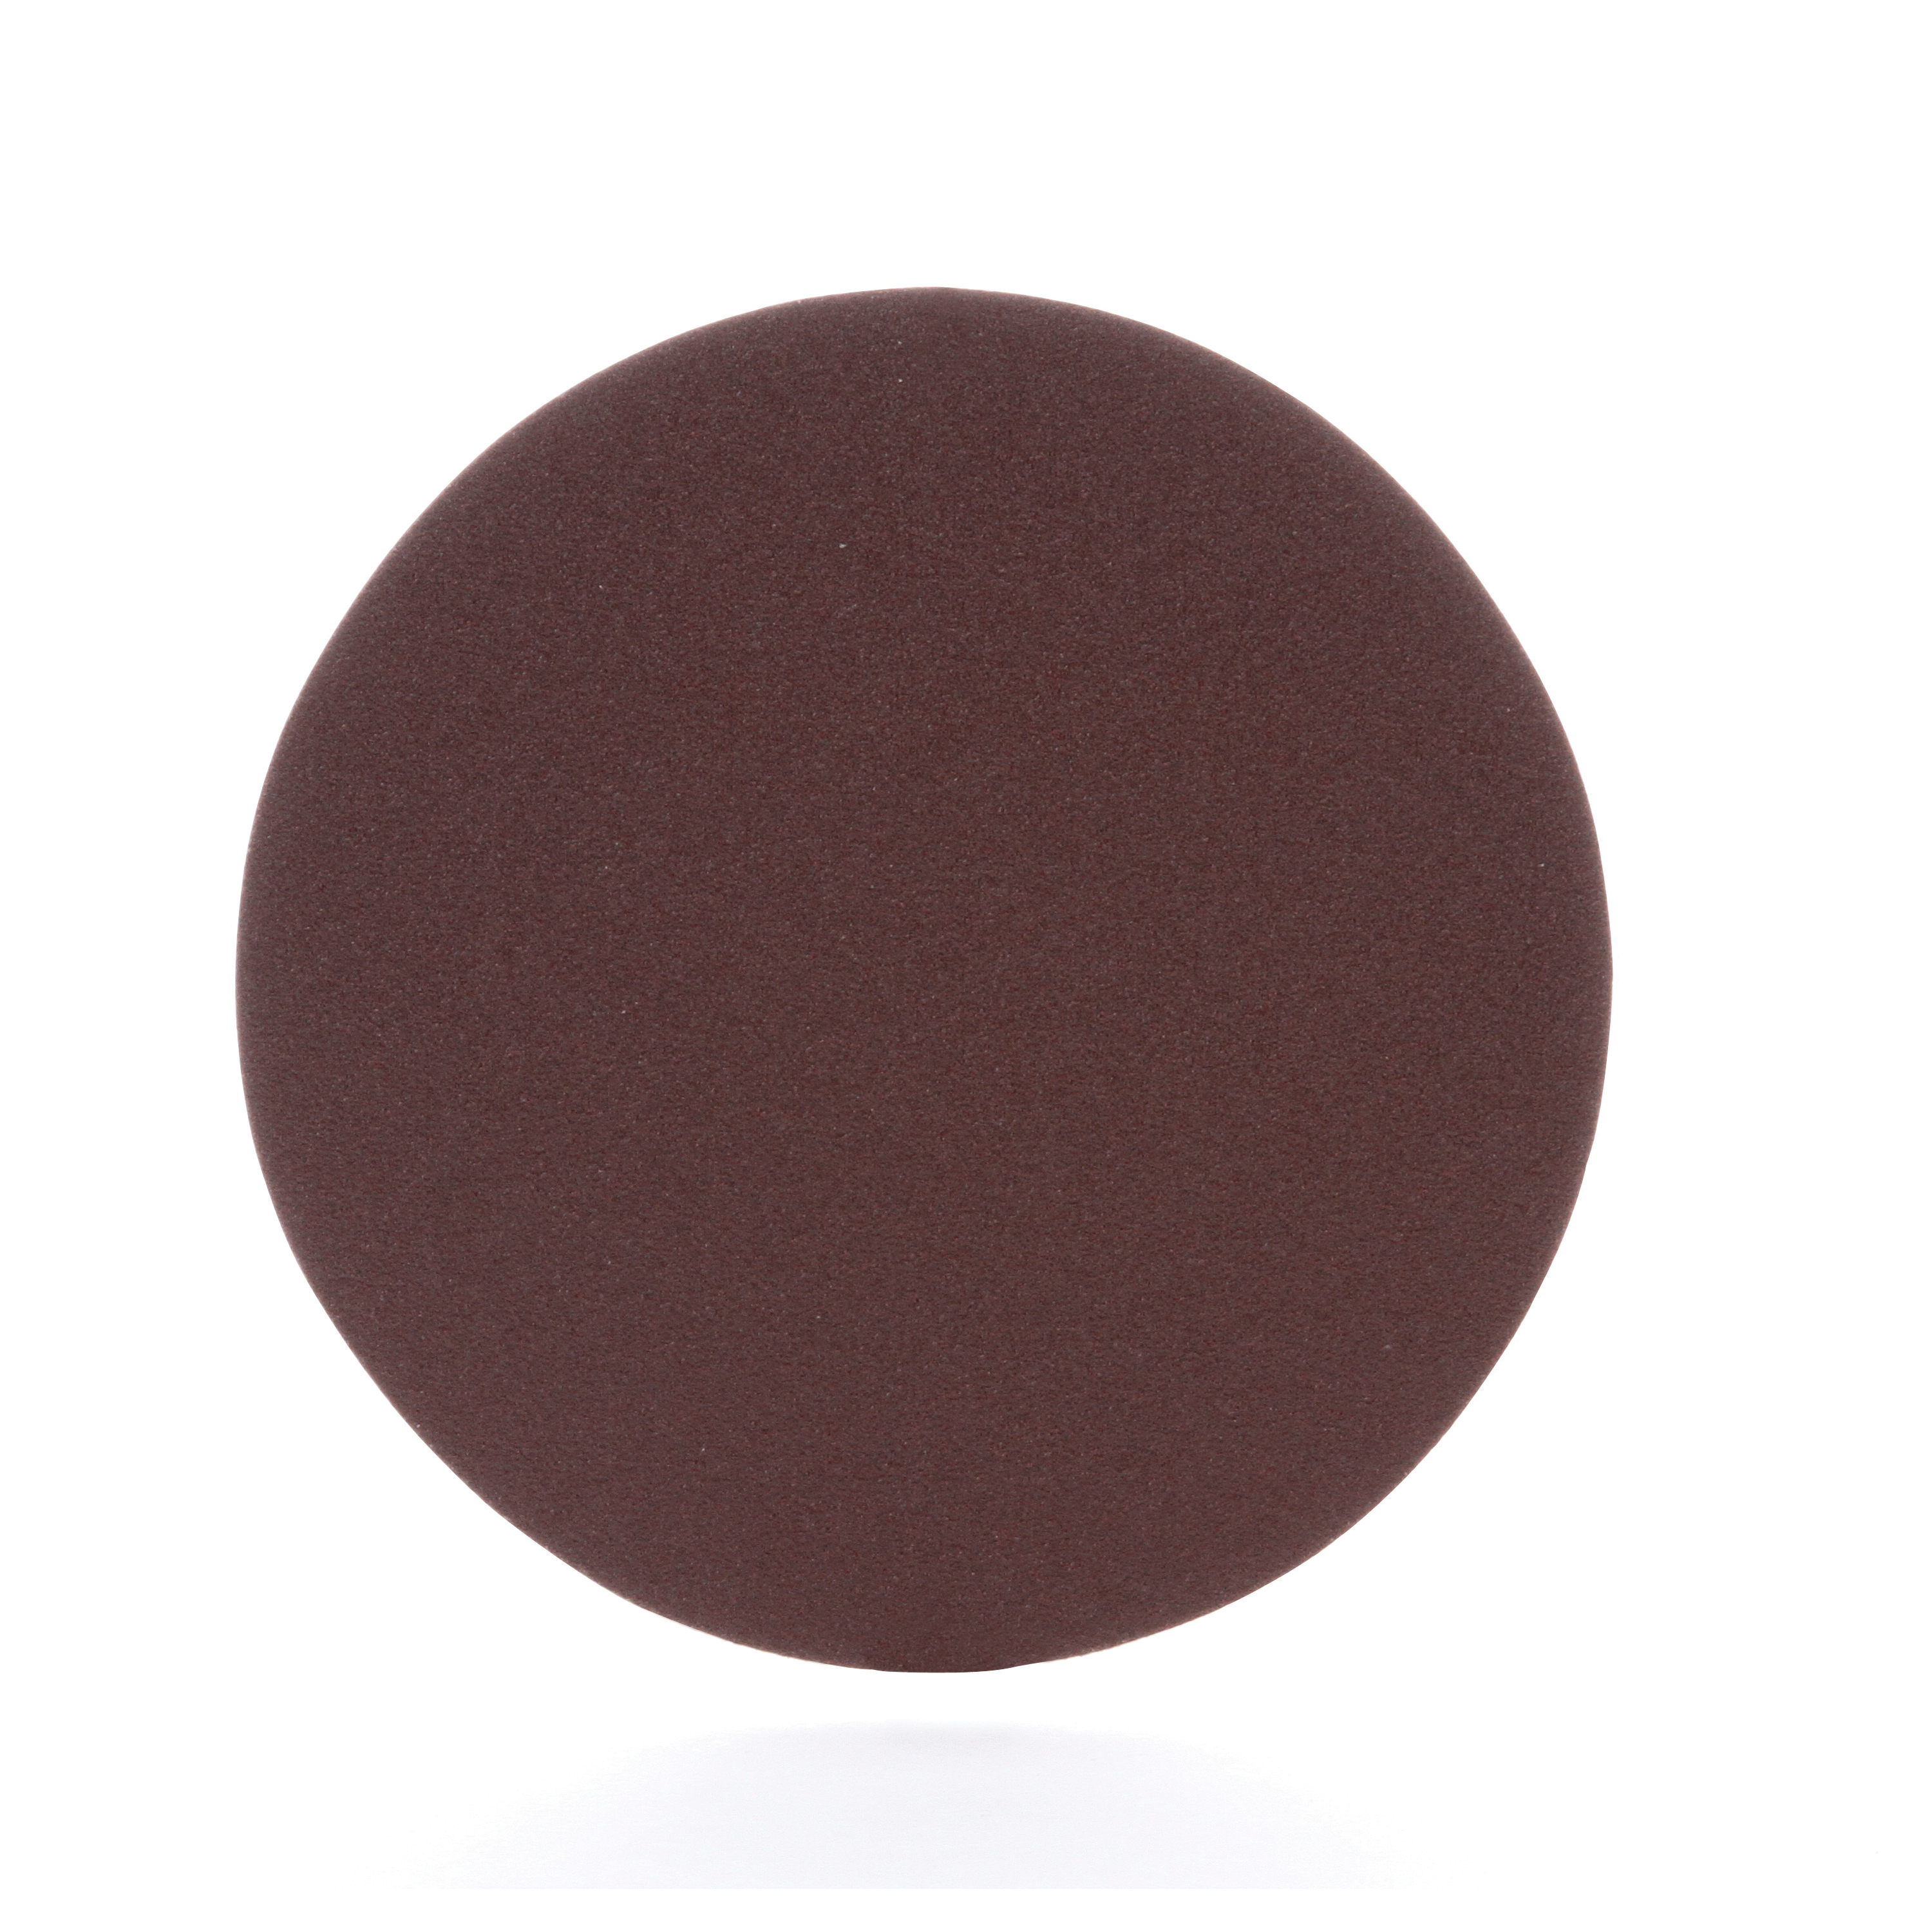 Stikit™ 051111-50452 General Purpose PSA Open Coated Abrasive Disc With Liner, 5 in Dia, P120 Grit, Fine Grade, Aluminum Oxide Abrasive, Cloth Backing